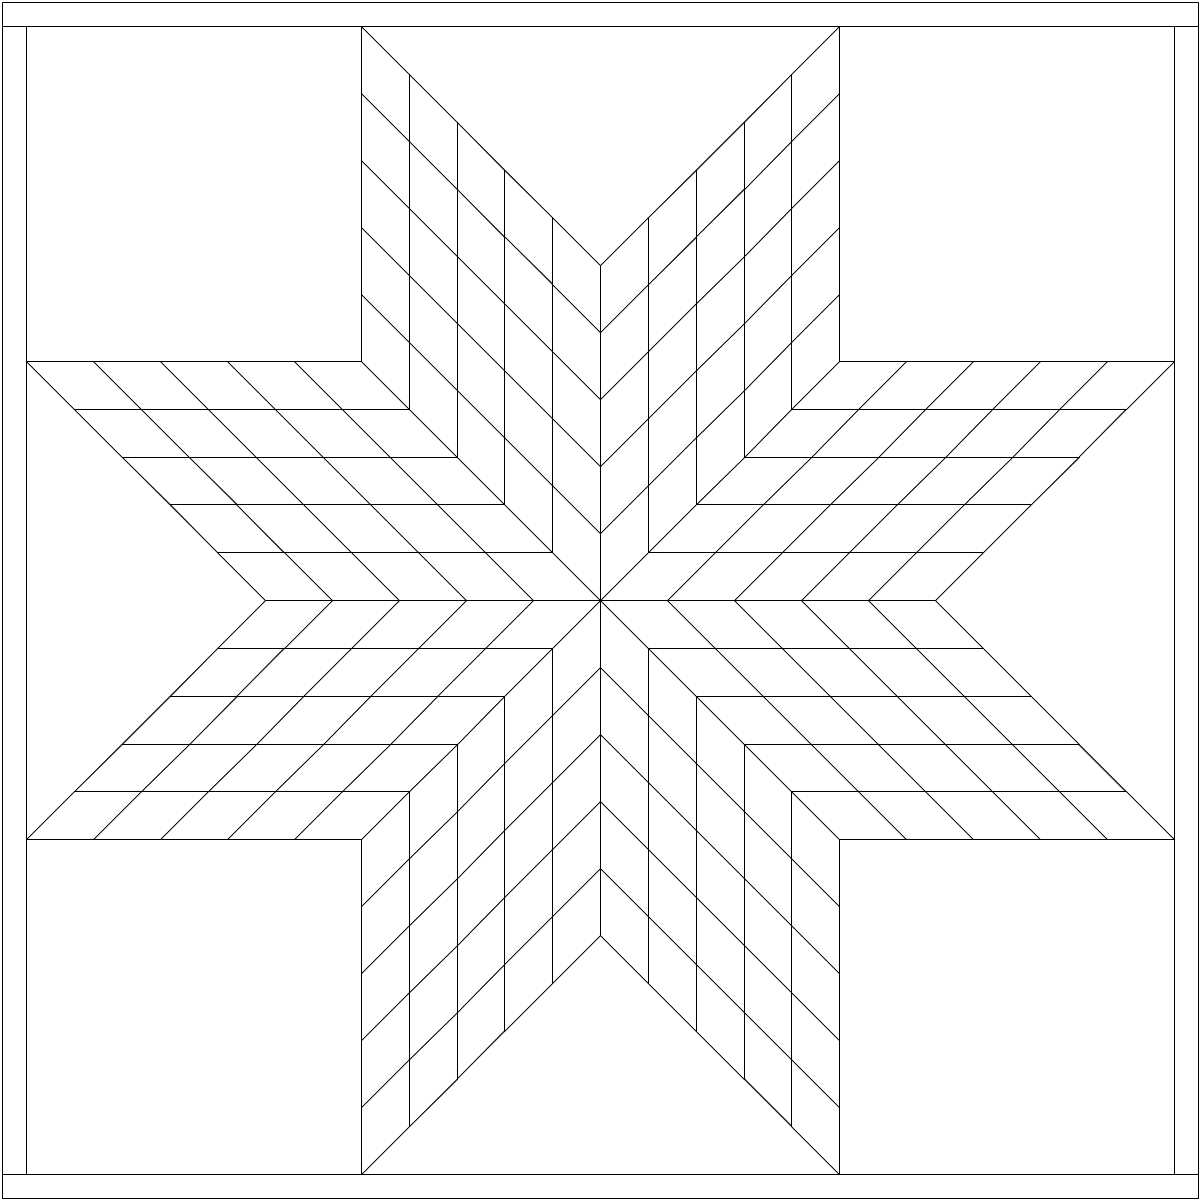 Printable quilt pattern coloring pages - Thread Looking For Lone Star Pattern To Color In